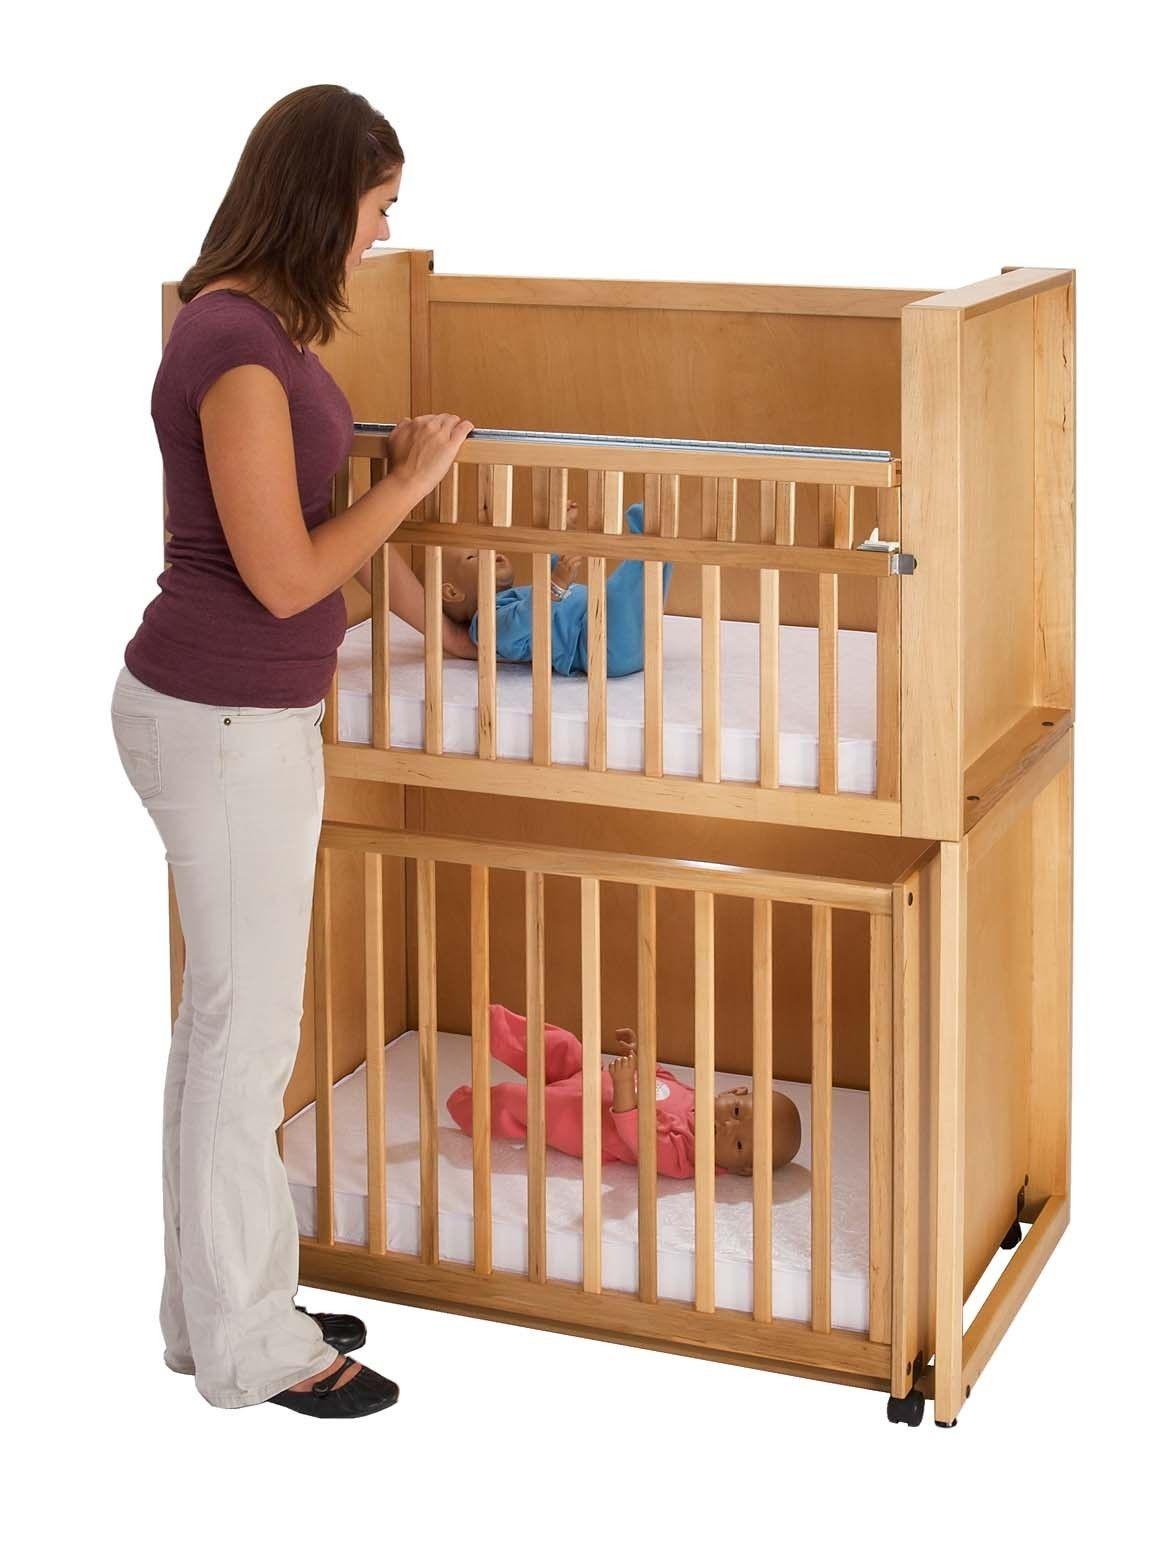 c 2 two infant bunkies crib stacking cribs by southeast church supply henley grace foret. Black Bedroom Furniture Sets. Home Design Ideas